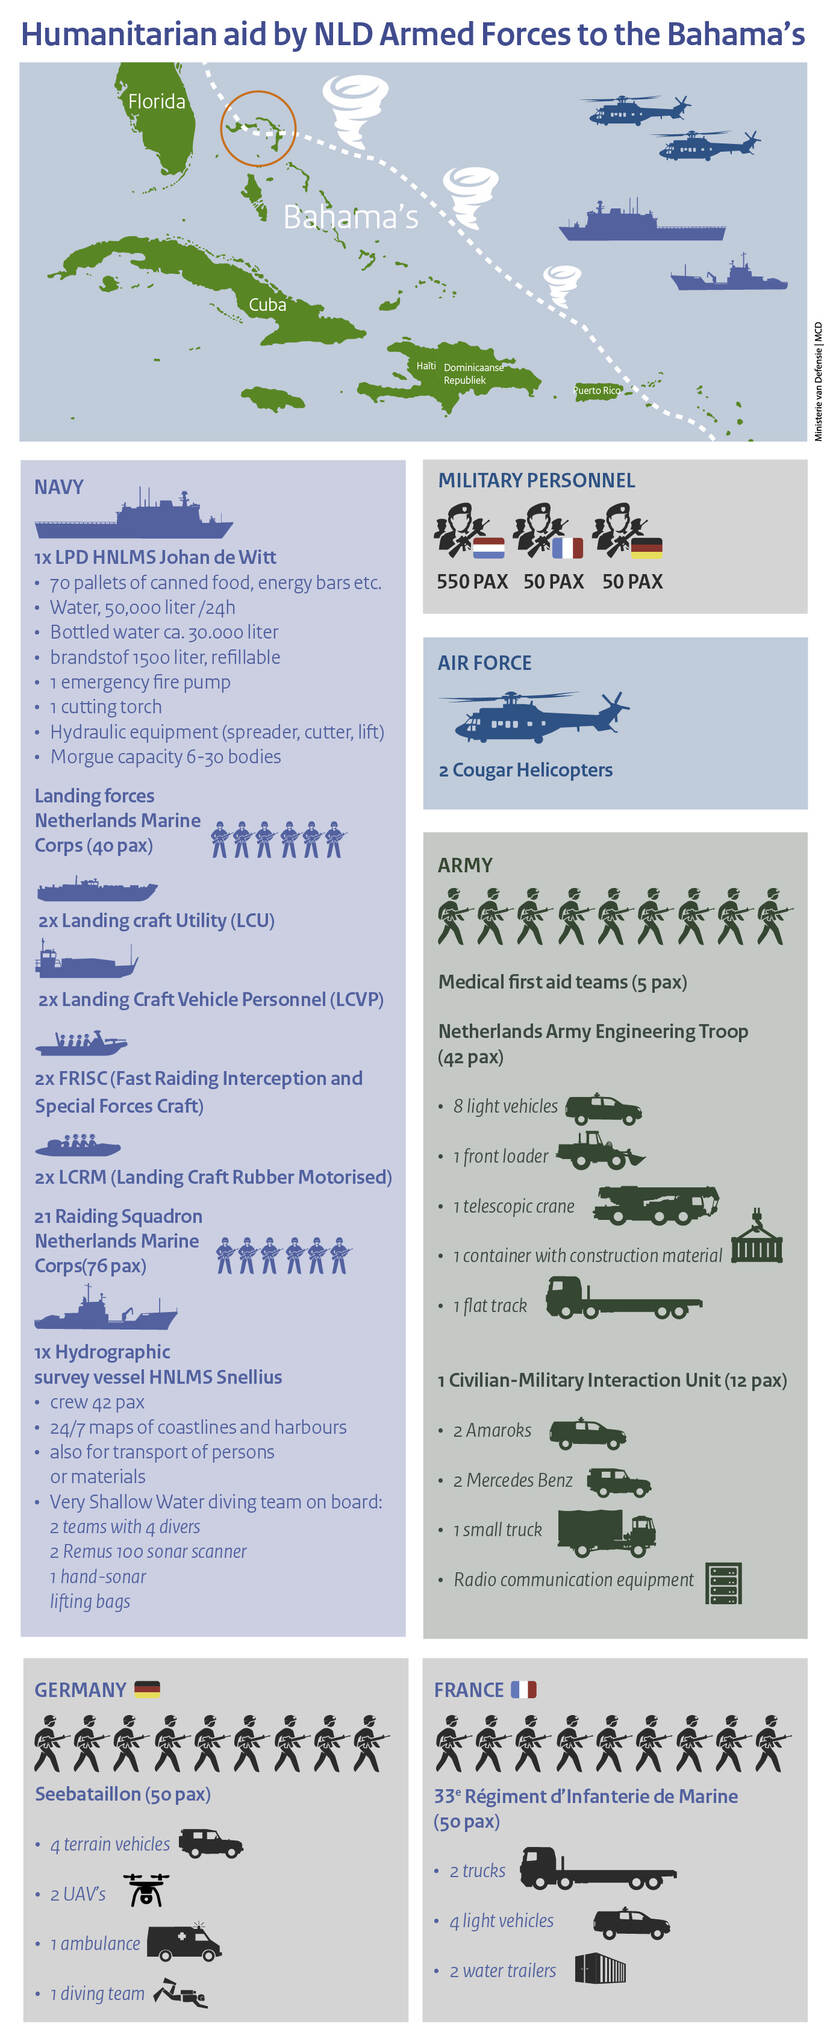 Infographic humanitarian aid by NLD Armed Forces to the Bahama's.